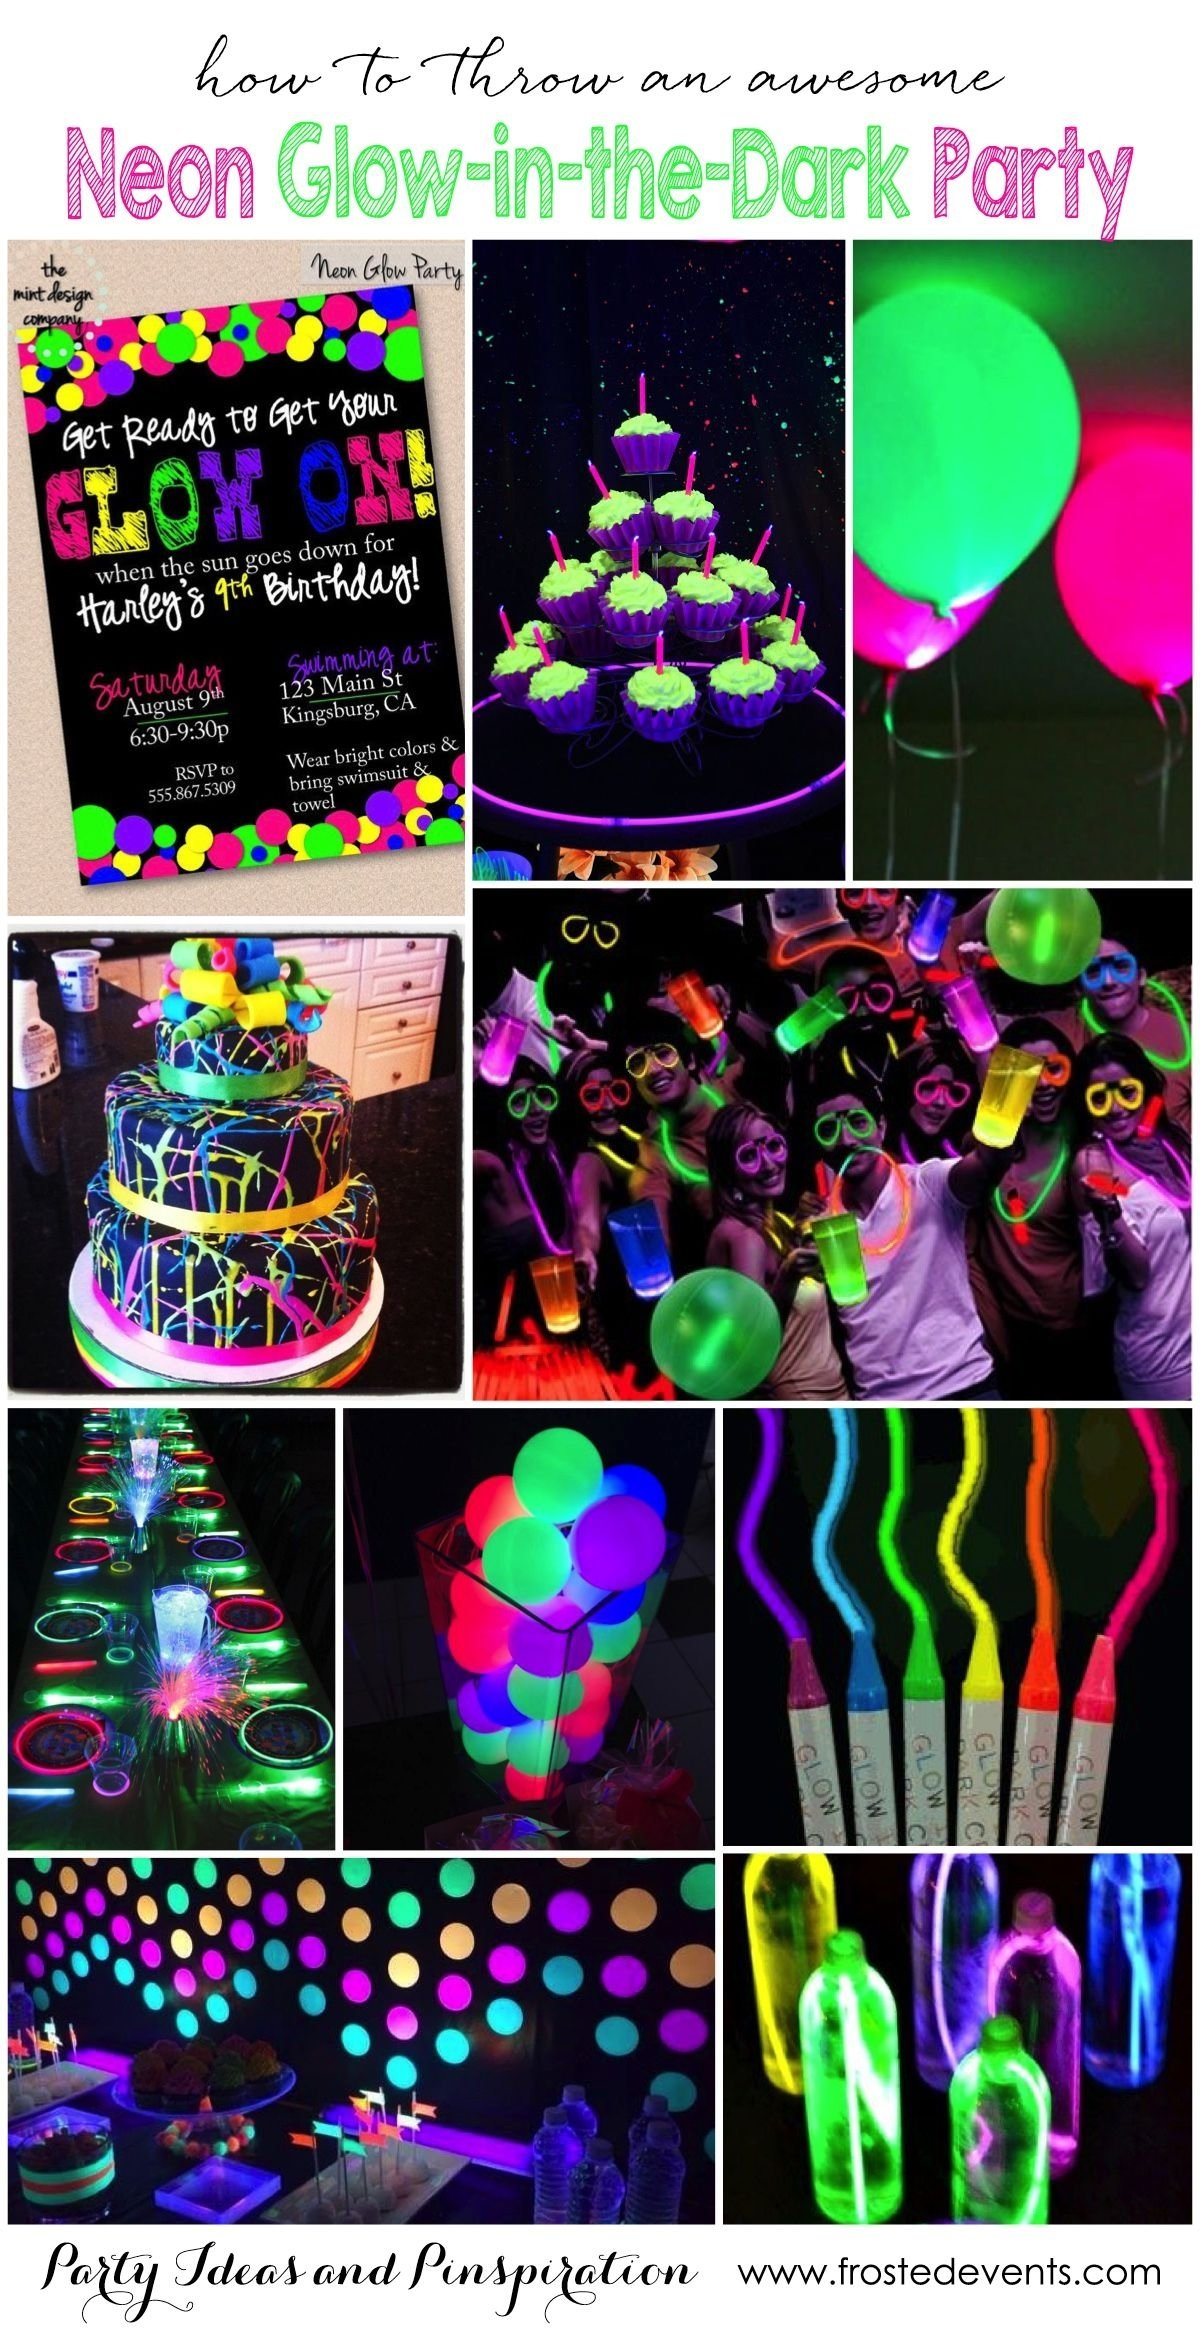 10 Fabulous Cool Teenage Birthday Party Ideas glow in the dark neon party ideas party themes for teenagers 2021